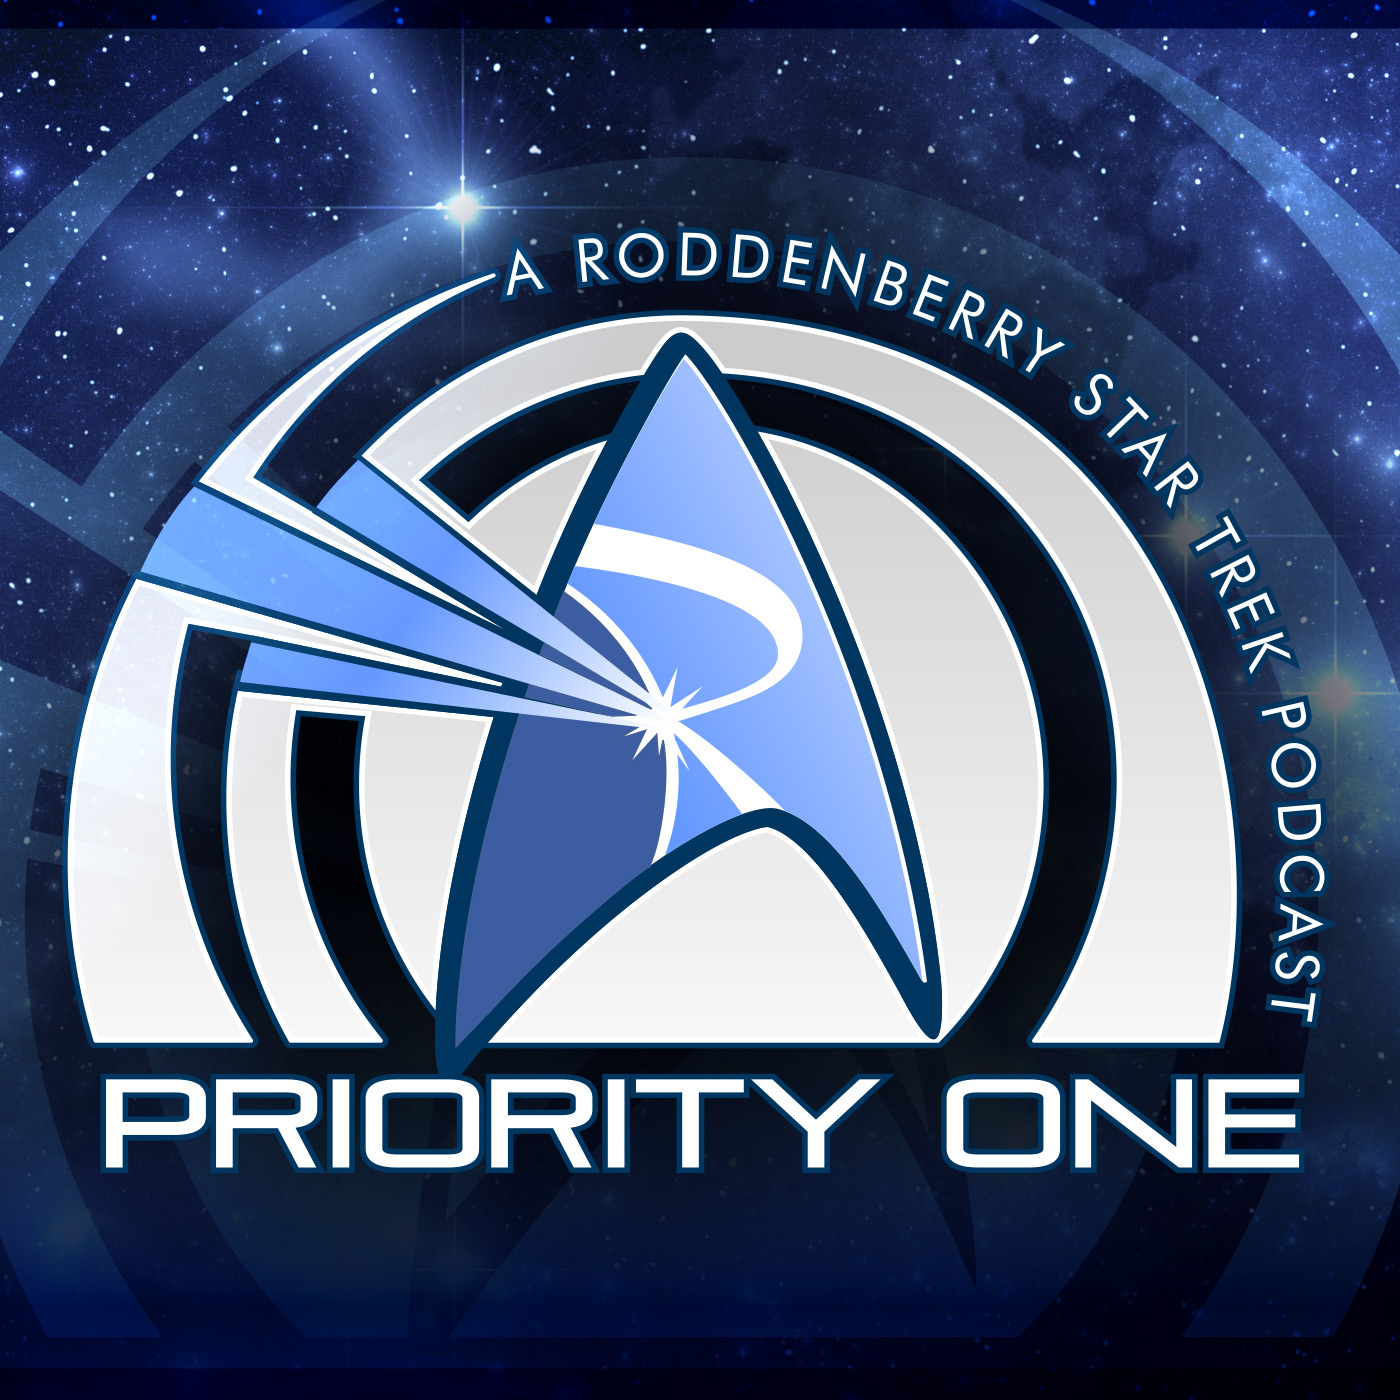 Artwork for 442 - Picard, Tarantino, and Andre Emerson | Priority One: A Roddenberry Star Trek Podcast